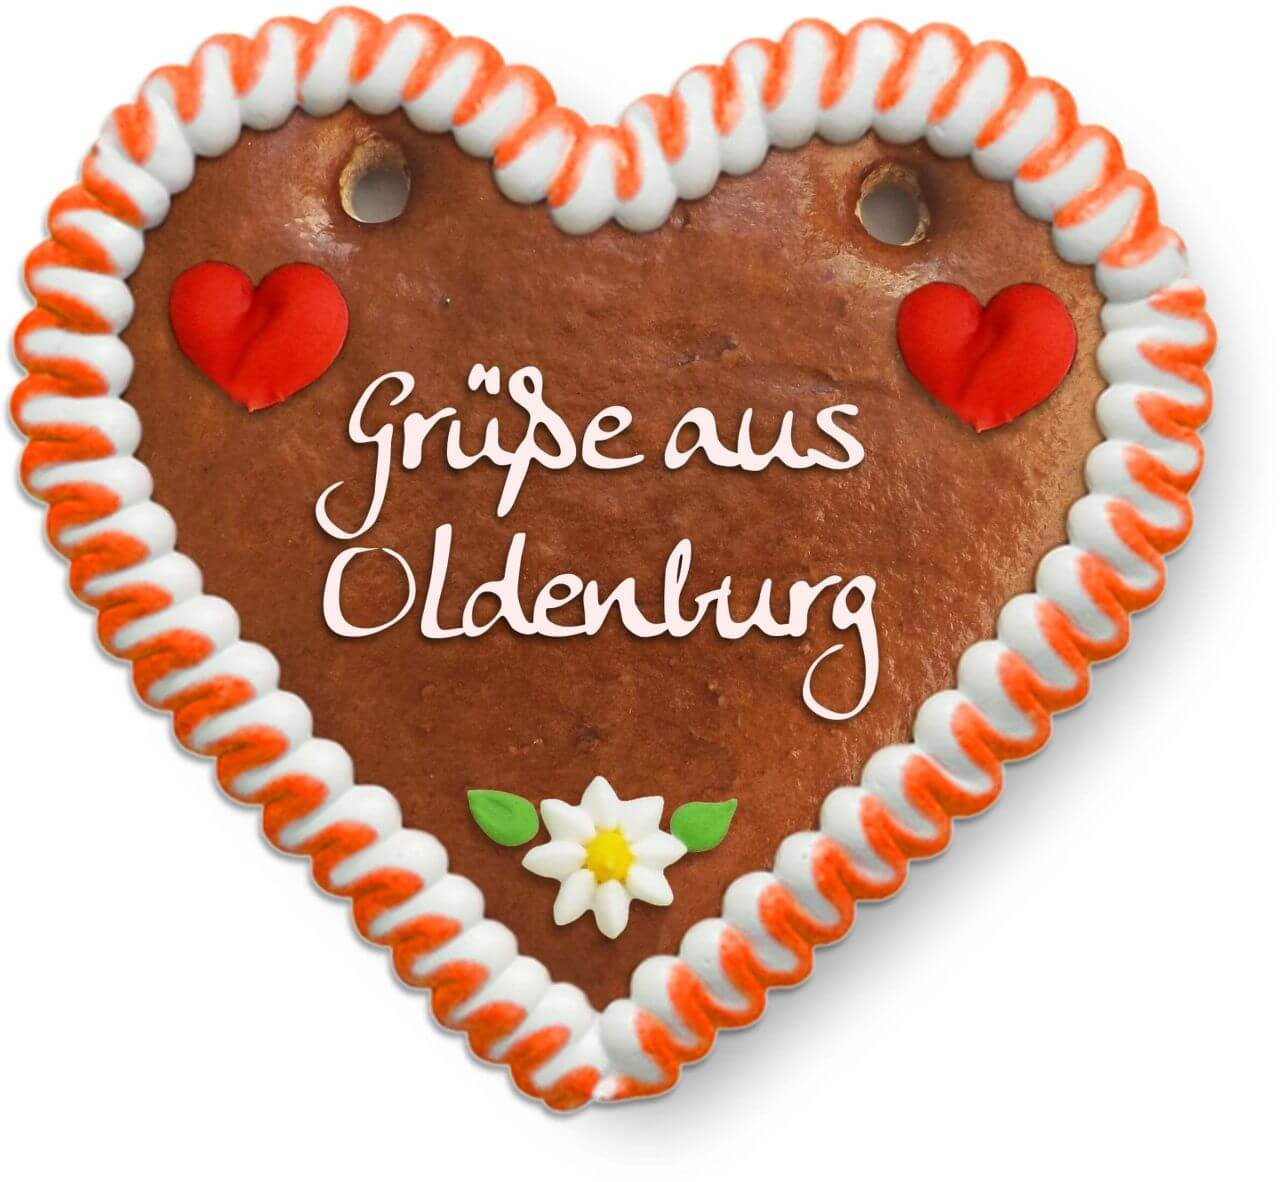 Grüße aus Oldenburg - Gingerbread Heart 12cm